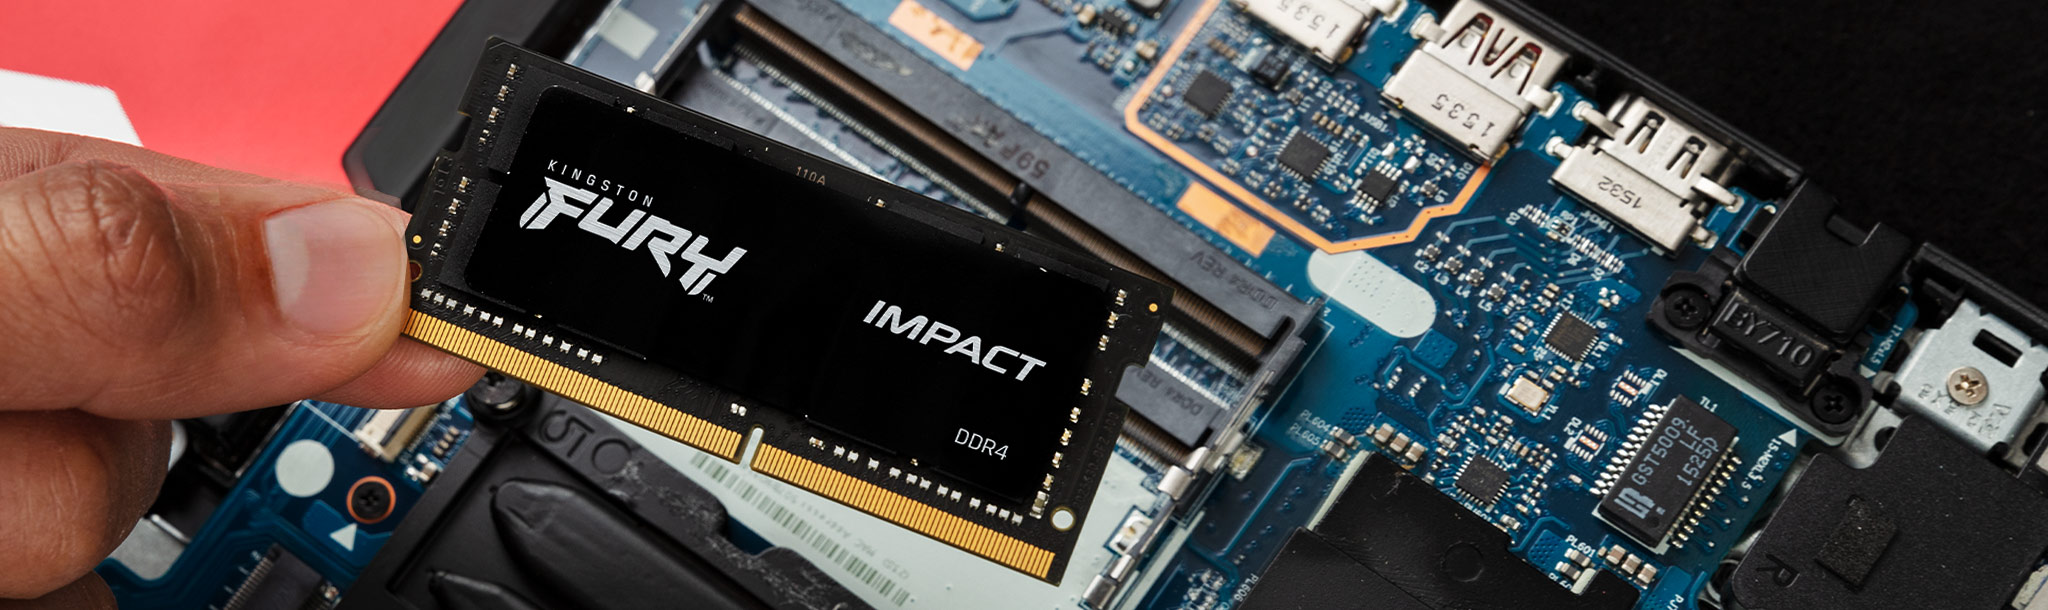 Higher Performance with Low Power Consumption